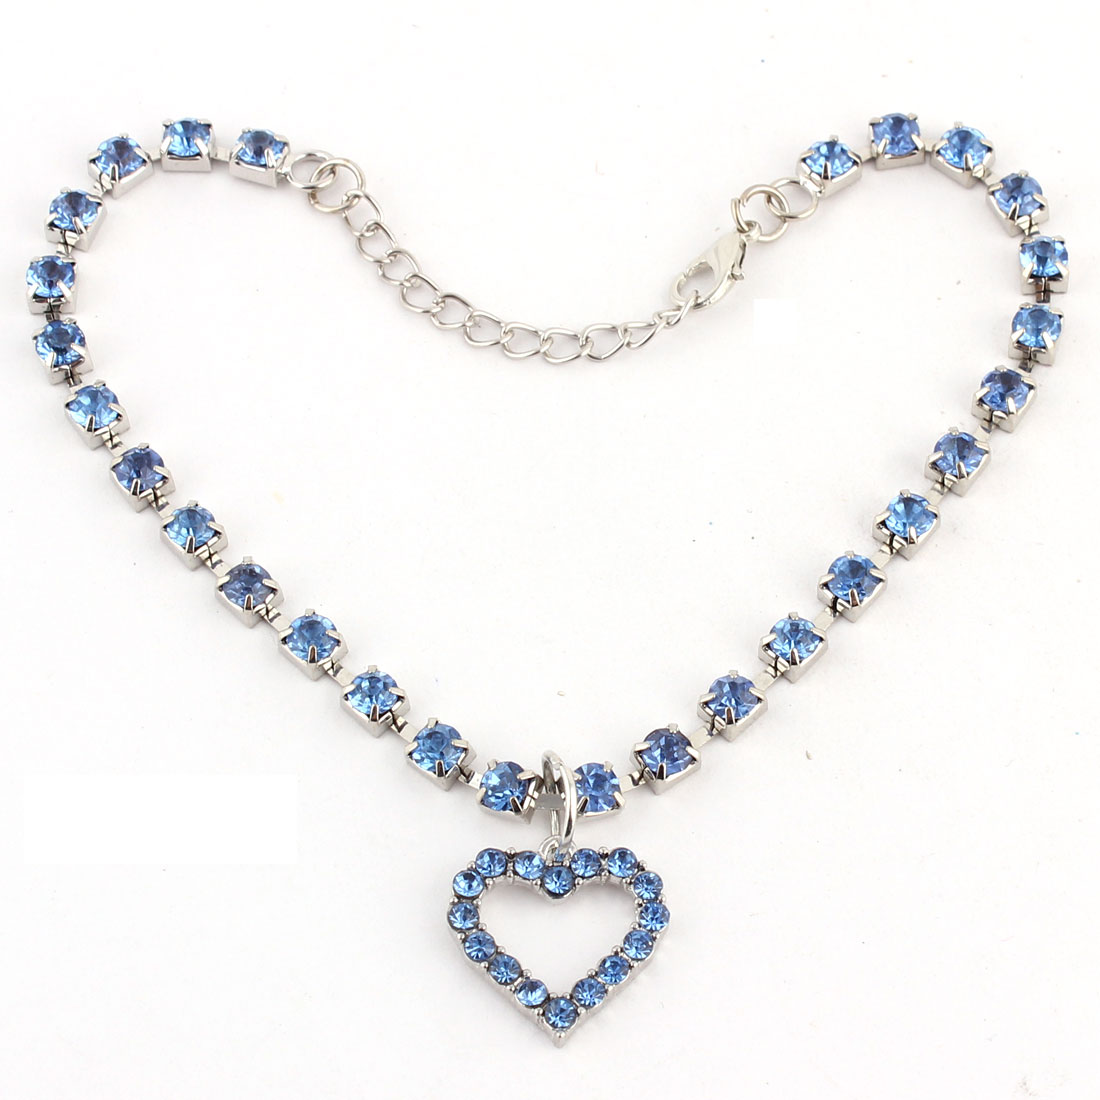 Dog Metal Beads Linked Rhinestone Inlaid Heart Shaped Pendant Necklace Blue